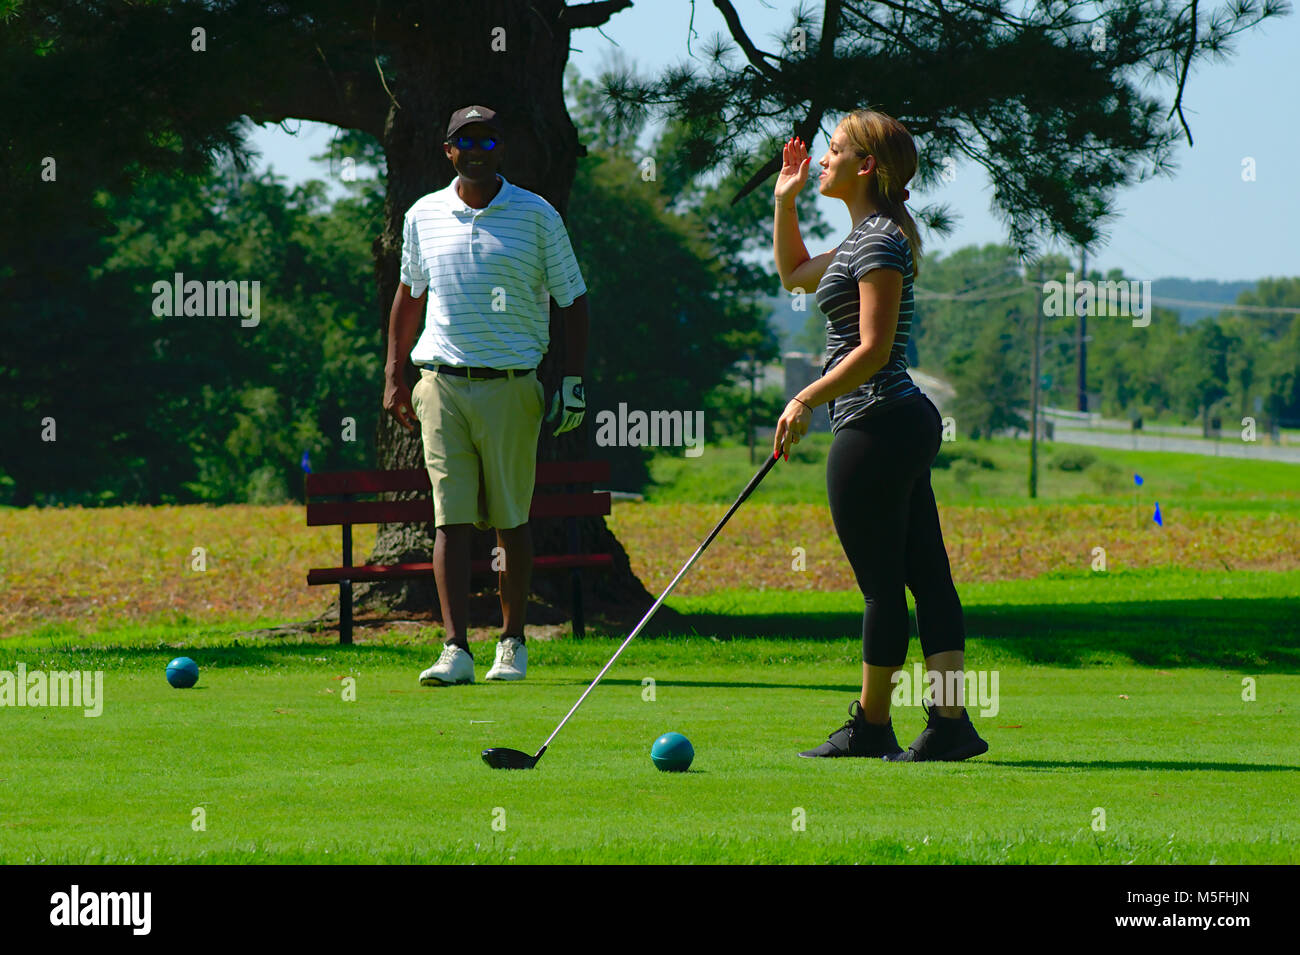 Golf twosome teeing off - Stock Image